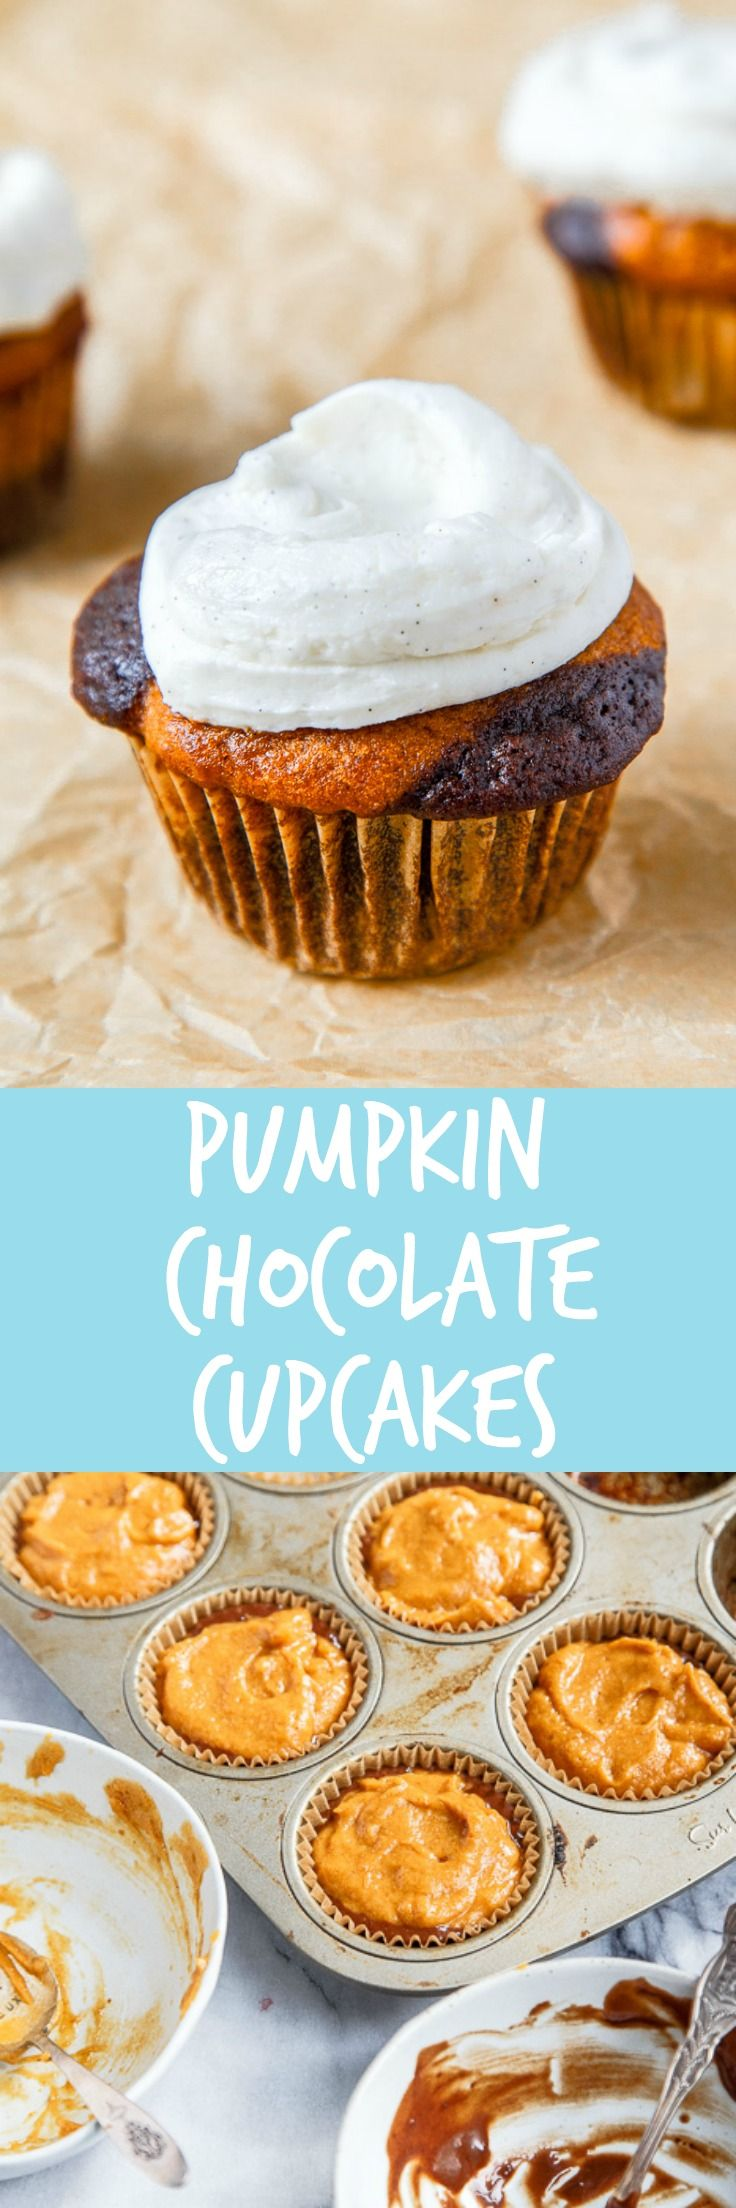 A small batch of pumpkin chocolate cupcakes. Recipe makes 4 cupcakes with vanilla bean buttercream.